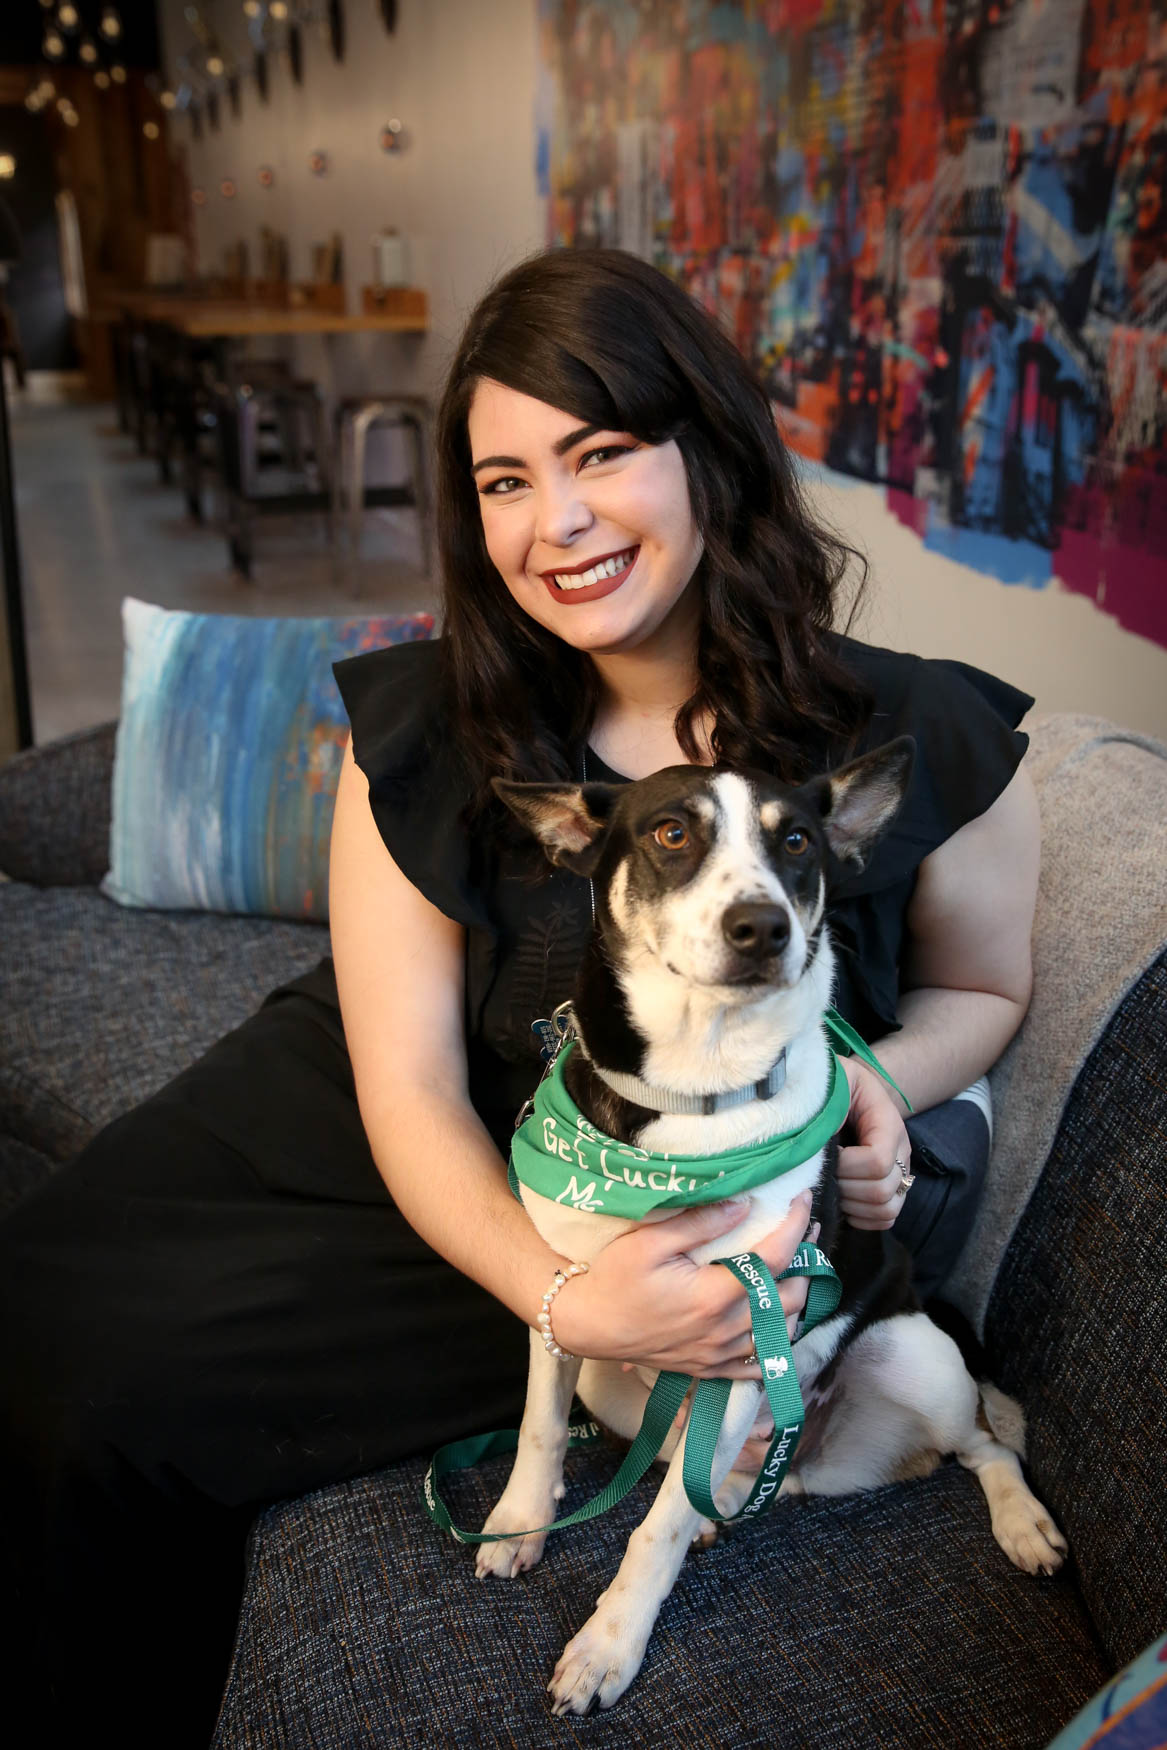 Meet Oreo and Cristina, a 3-year-old Shepherd/Husky mix{ } and a 26-year-old human respectively. Photo location: Moxy Washington, D.C. Downtown (Image: Amanda Andrade-Rhoades/ DC Refined)